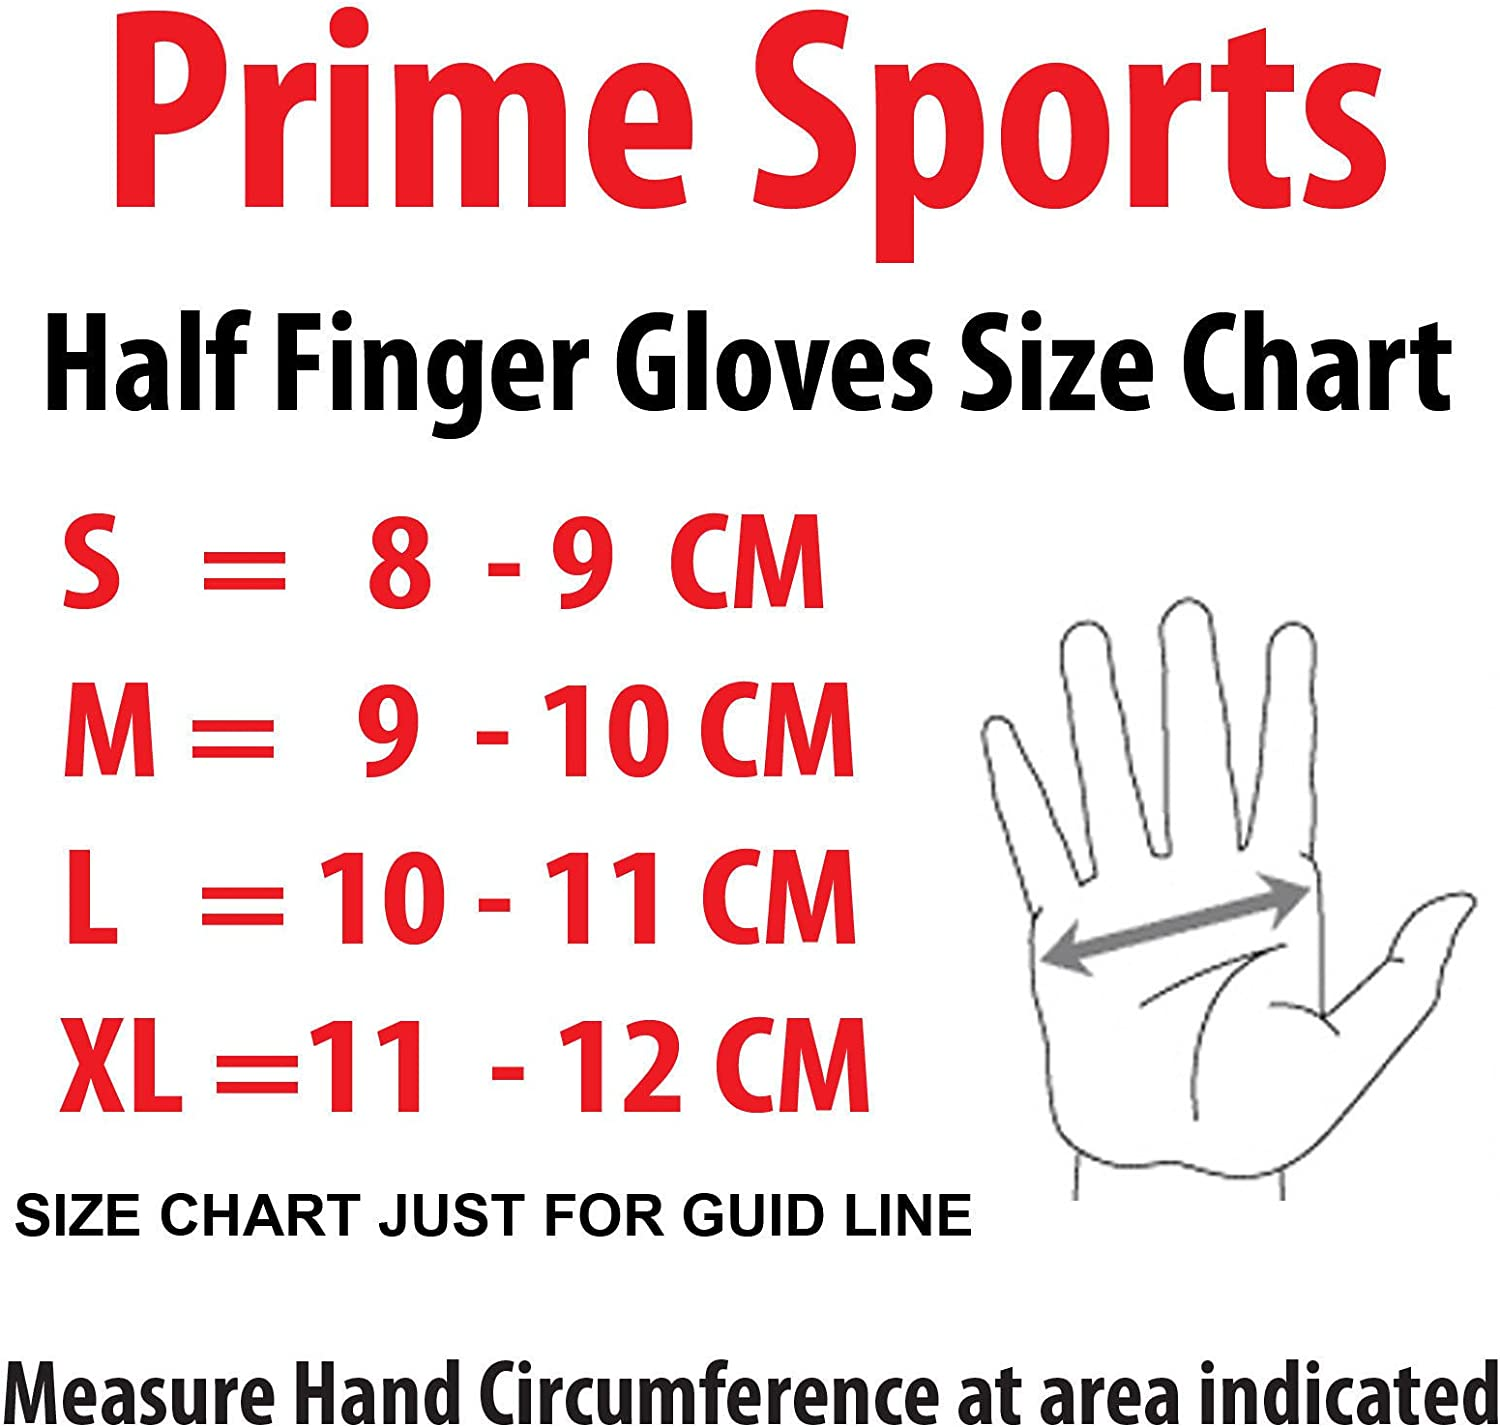 Prime Leather Quality Fingerless Gloves Real Leather Soft Weight Training Cycling Bike Wheelchair Body building weight lifting GYM Black Brown Tan